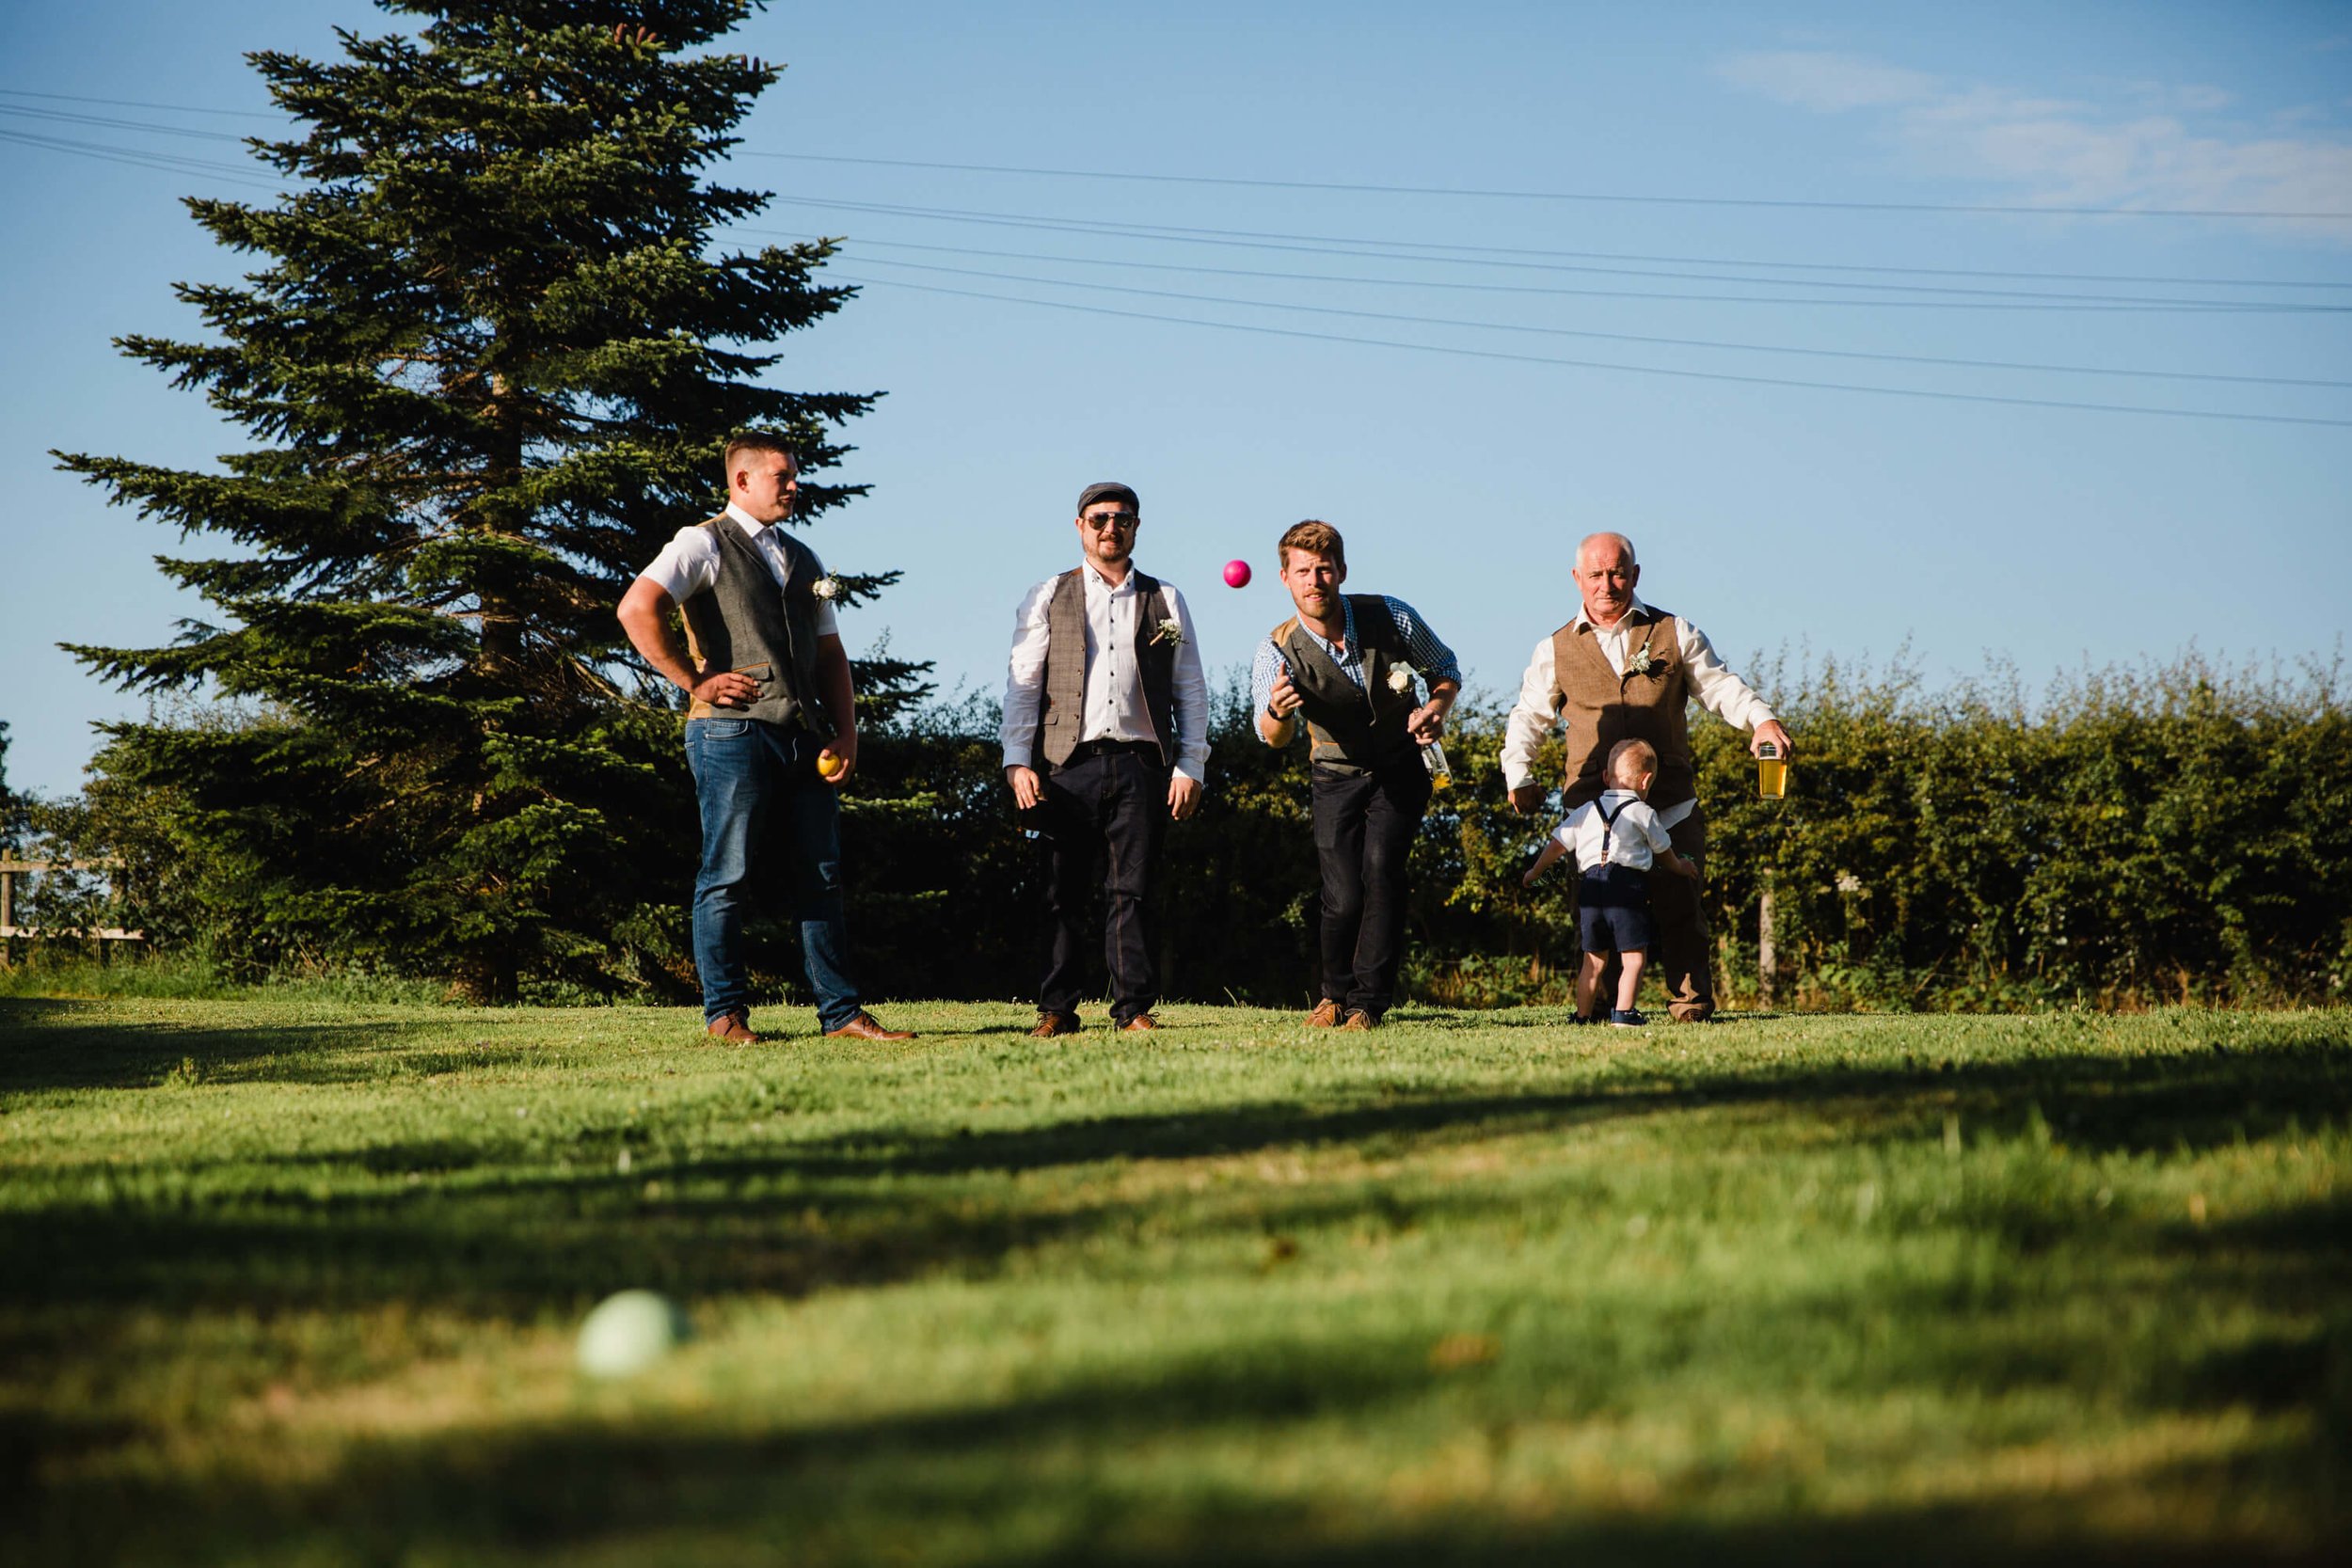 photograph of groomsmen playing lawn boules in pasture